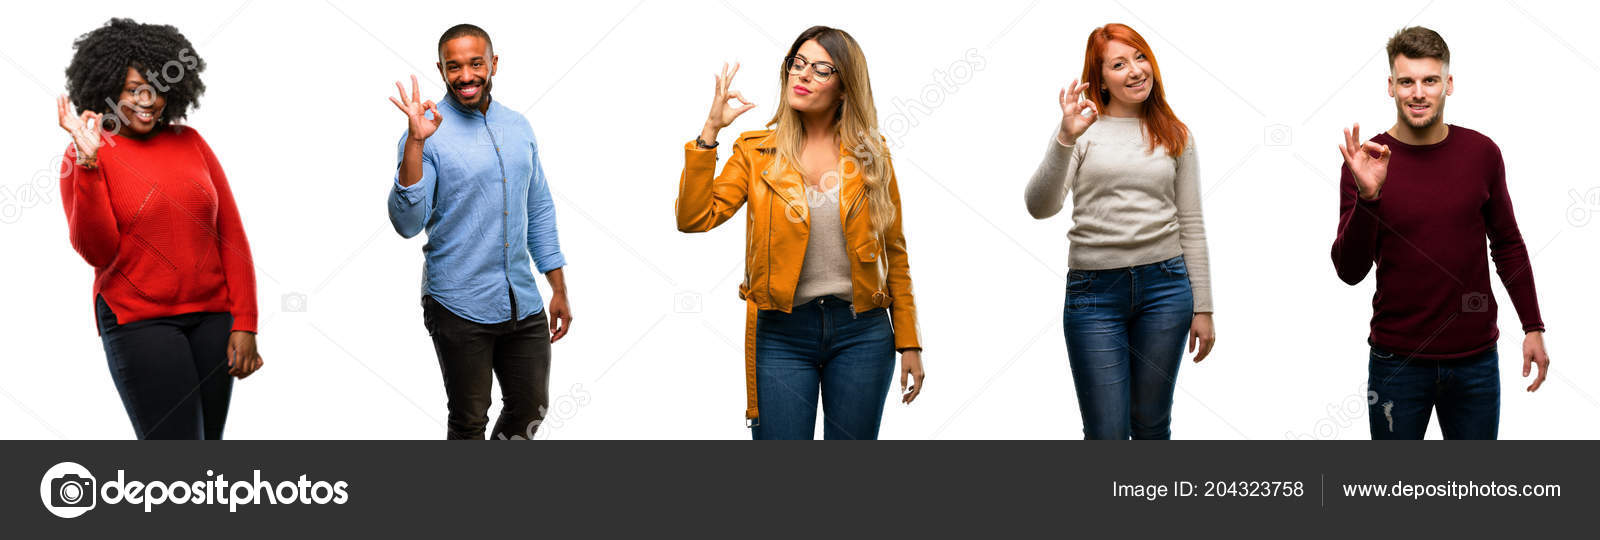 Group Cool People Woman Man Doing Sign Hand Approve Gesture — Stock Photo